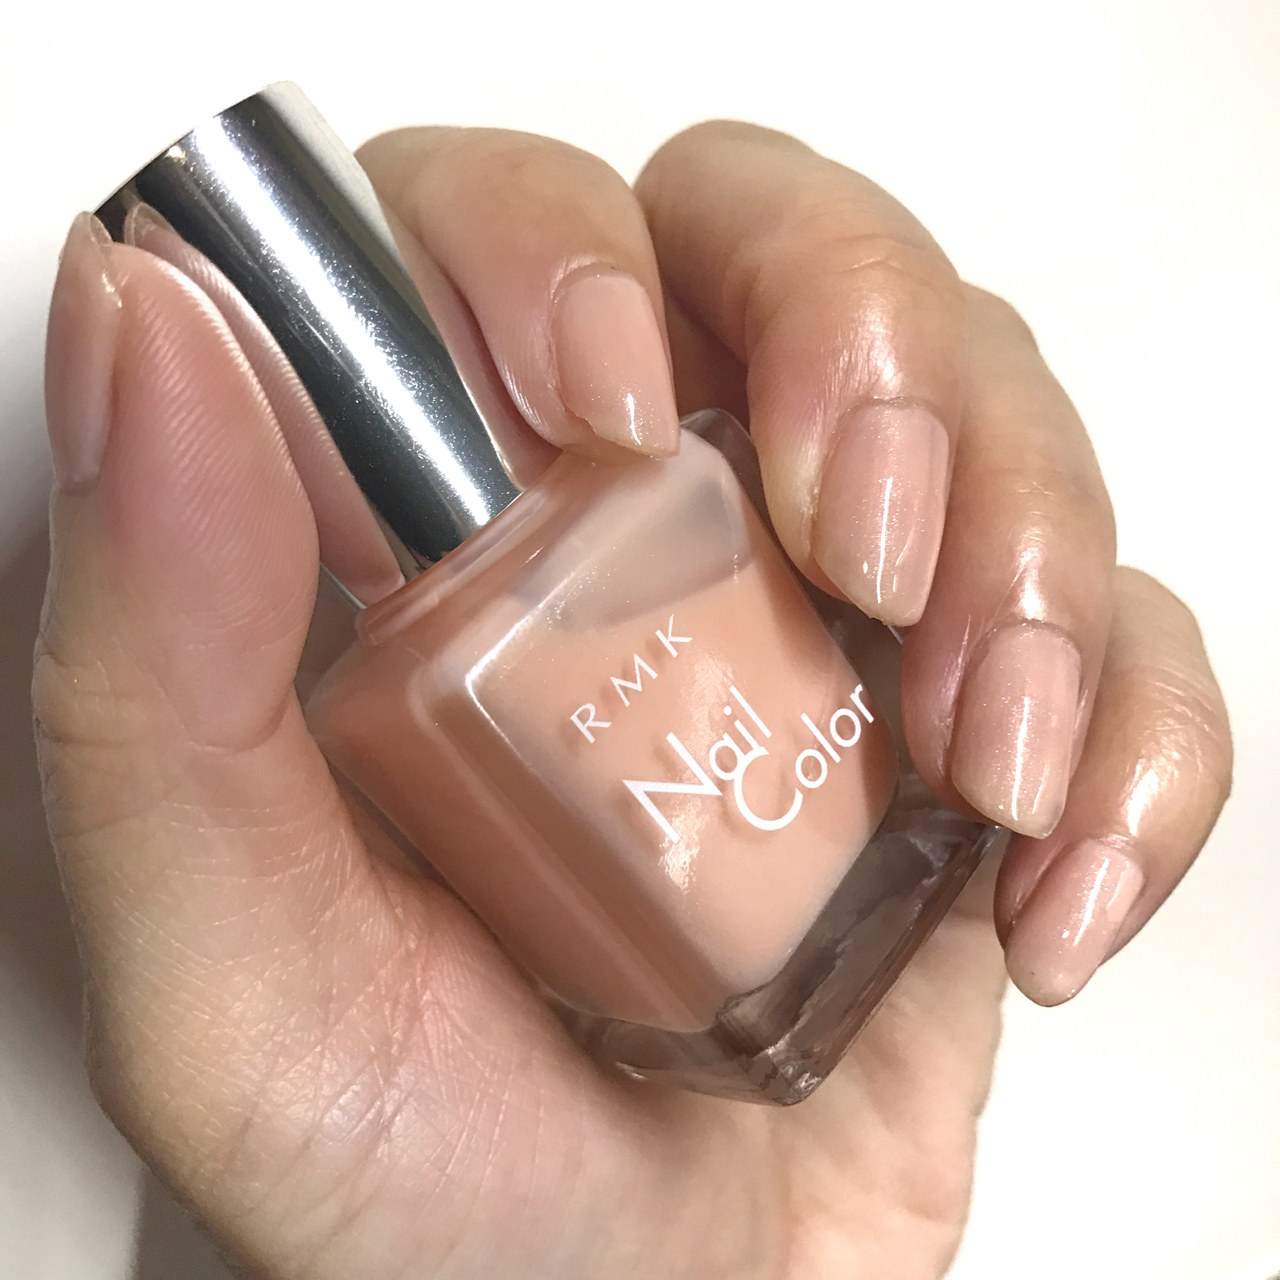 RMK Nail Color EX70 for Spring 2017